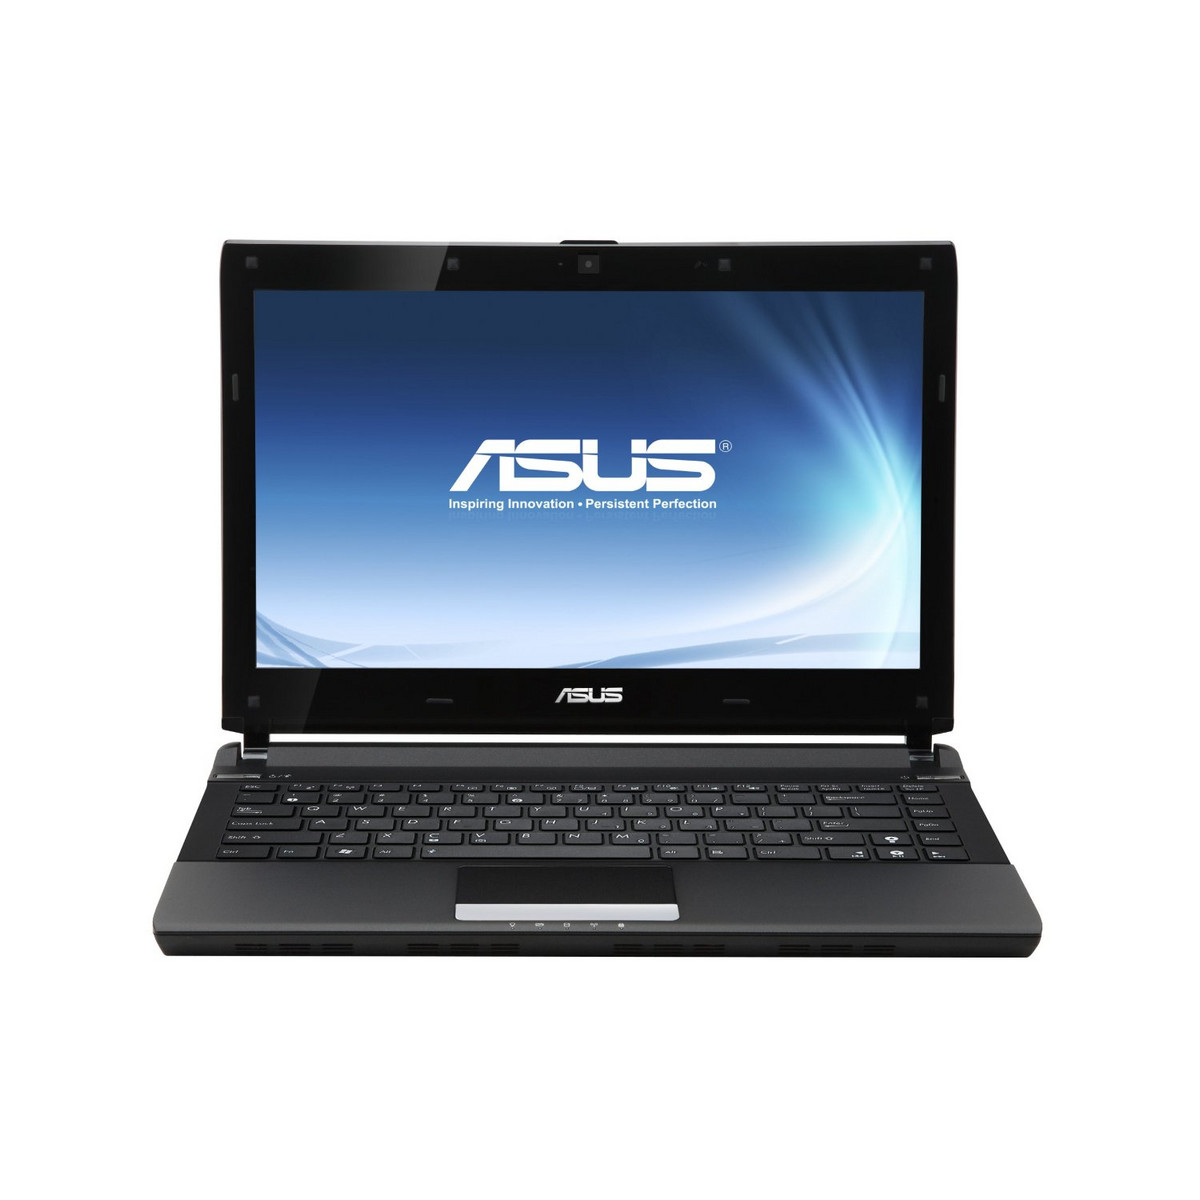 Asus U31SD Notebook Smart Logon Drivers for PC